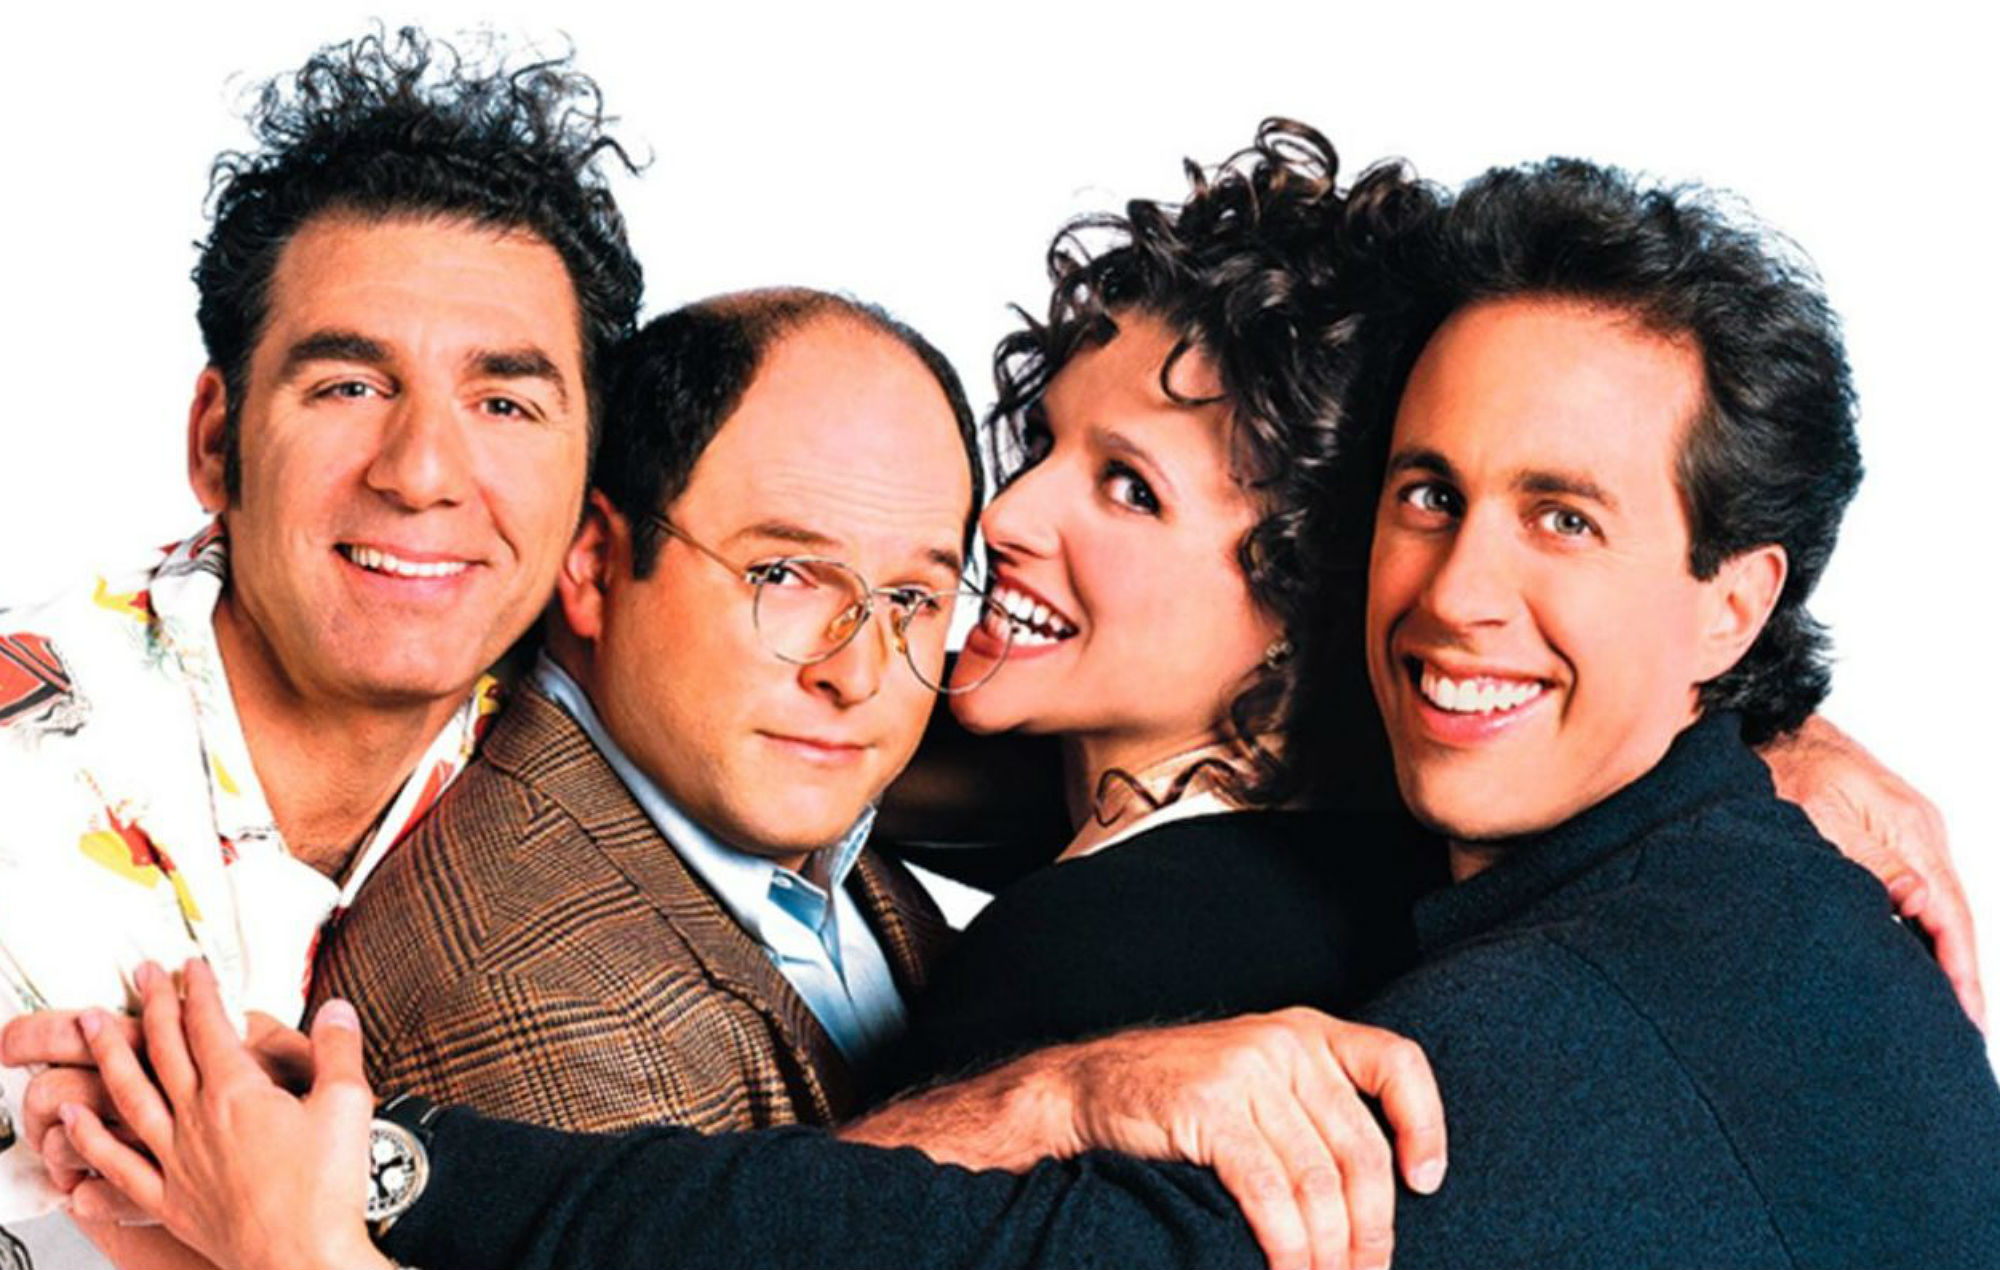 'Seinfeld' writer says Kramer would be a QAnon believer now